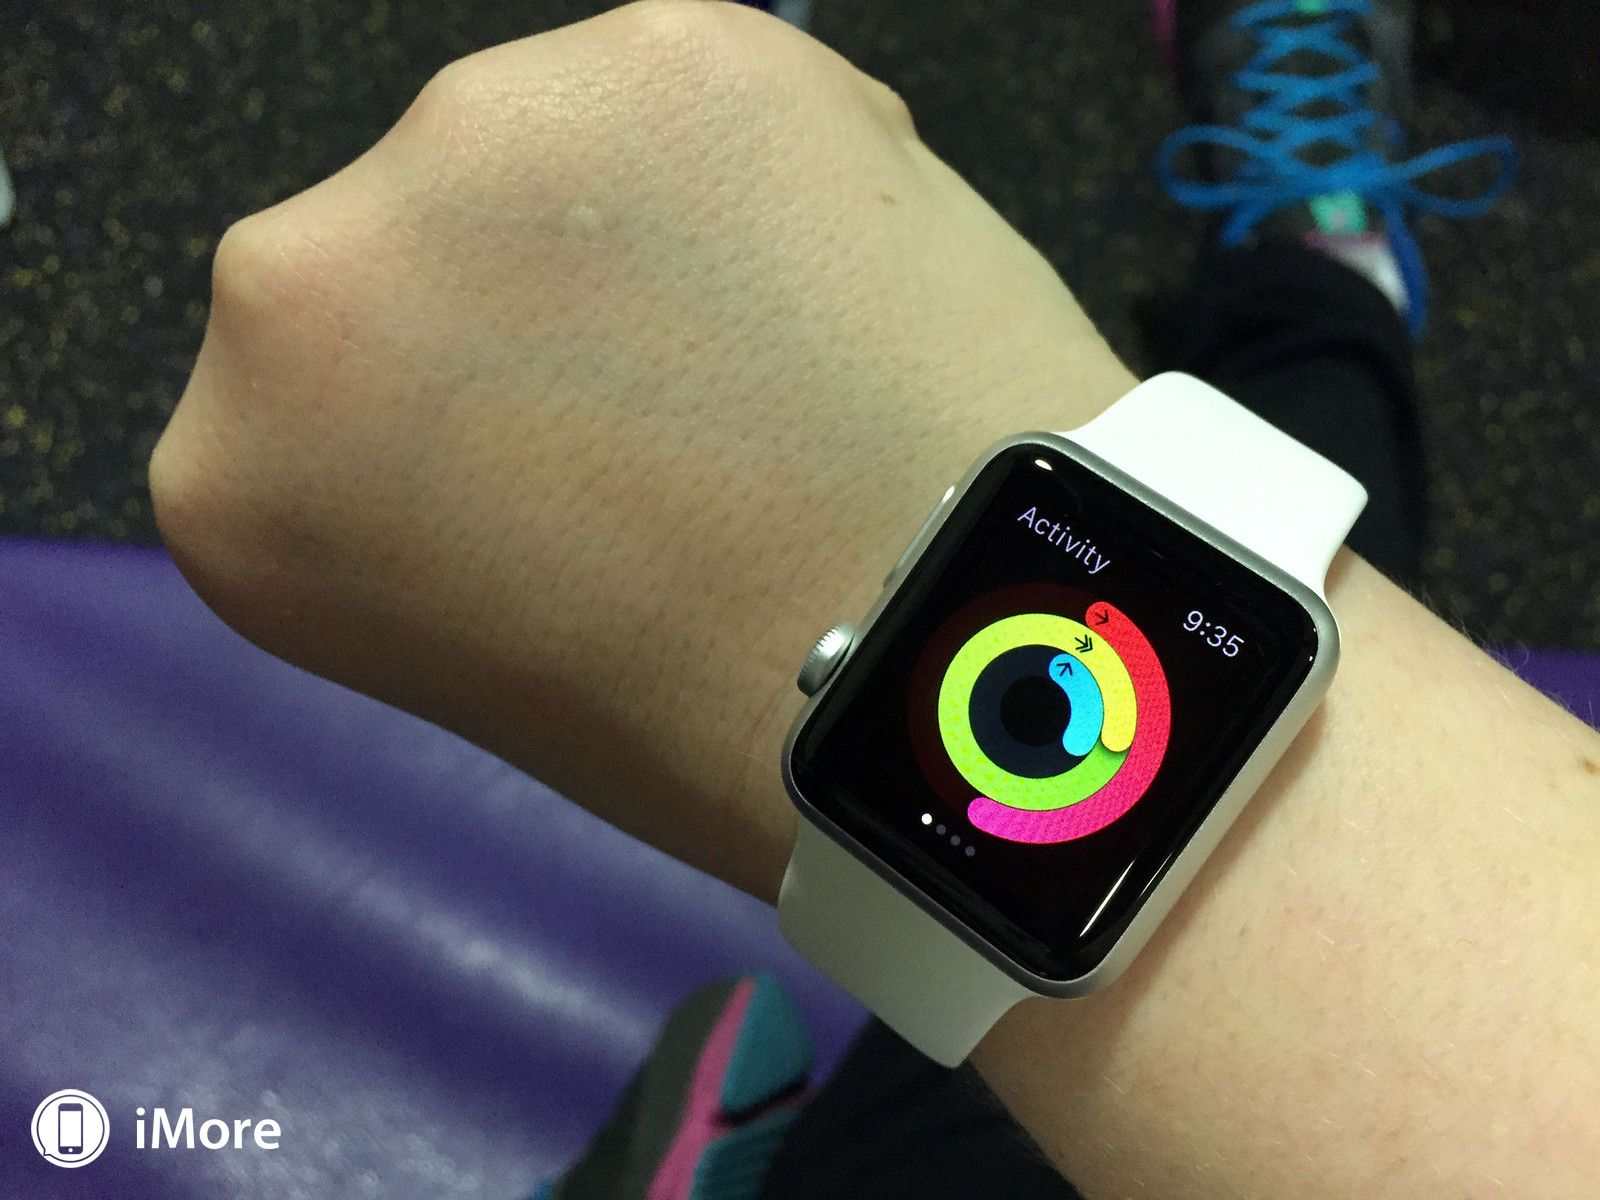 How to set a calorie goal with Activity for Apple Watch | iMore